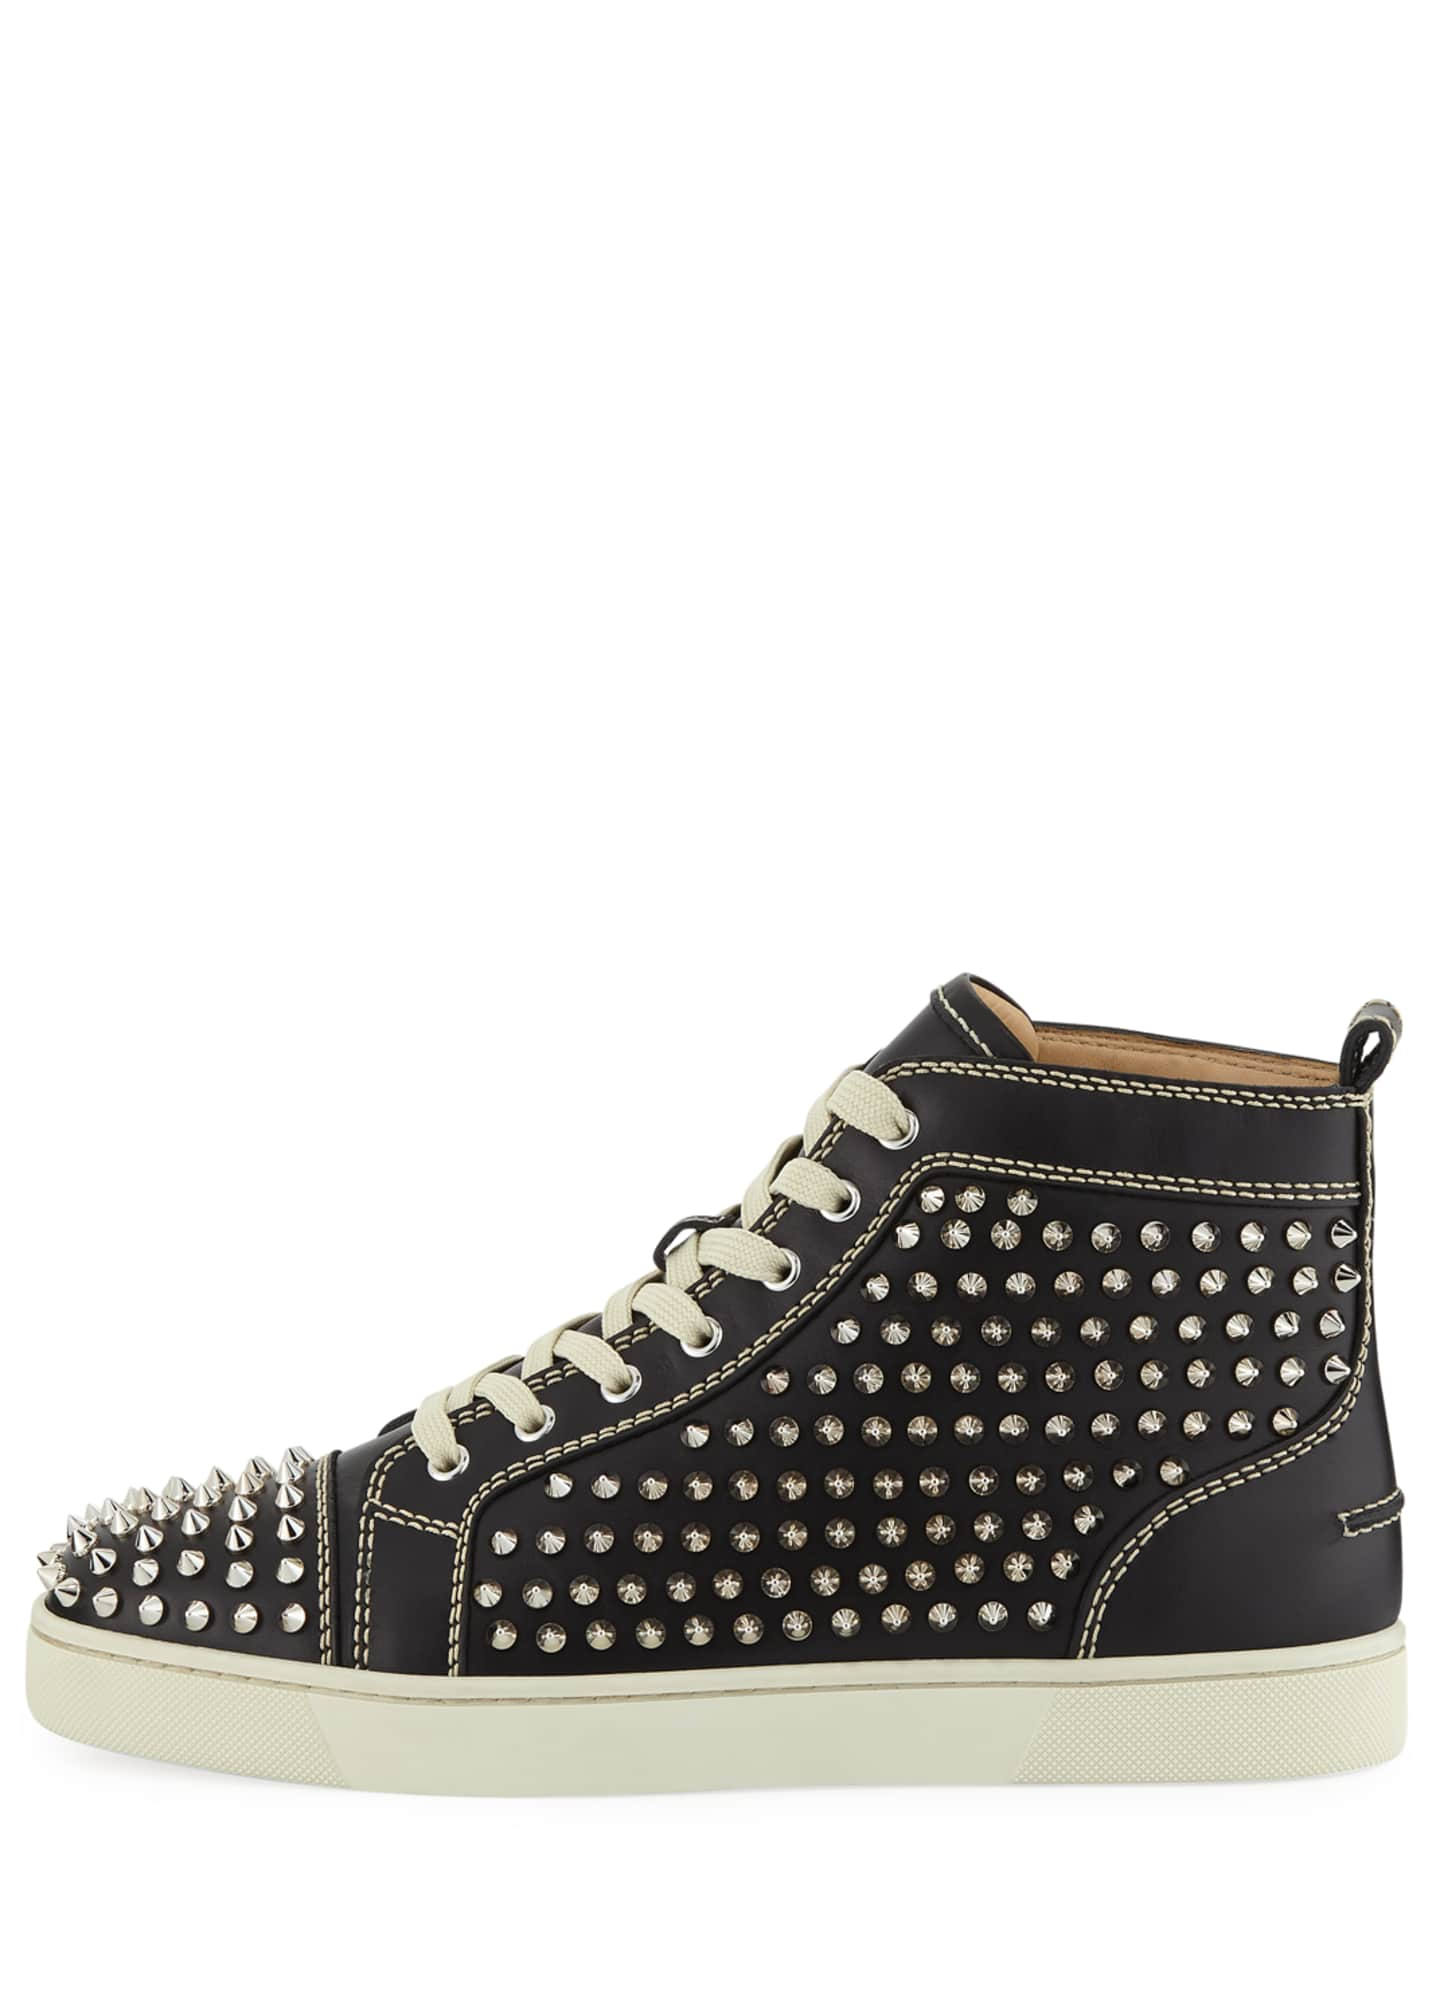 Image 3 of 4: Men's Louis Mid-Top Spiked Leather Sneakers